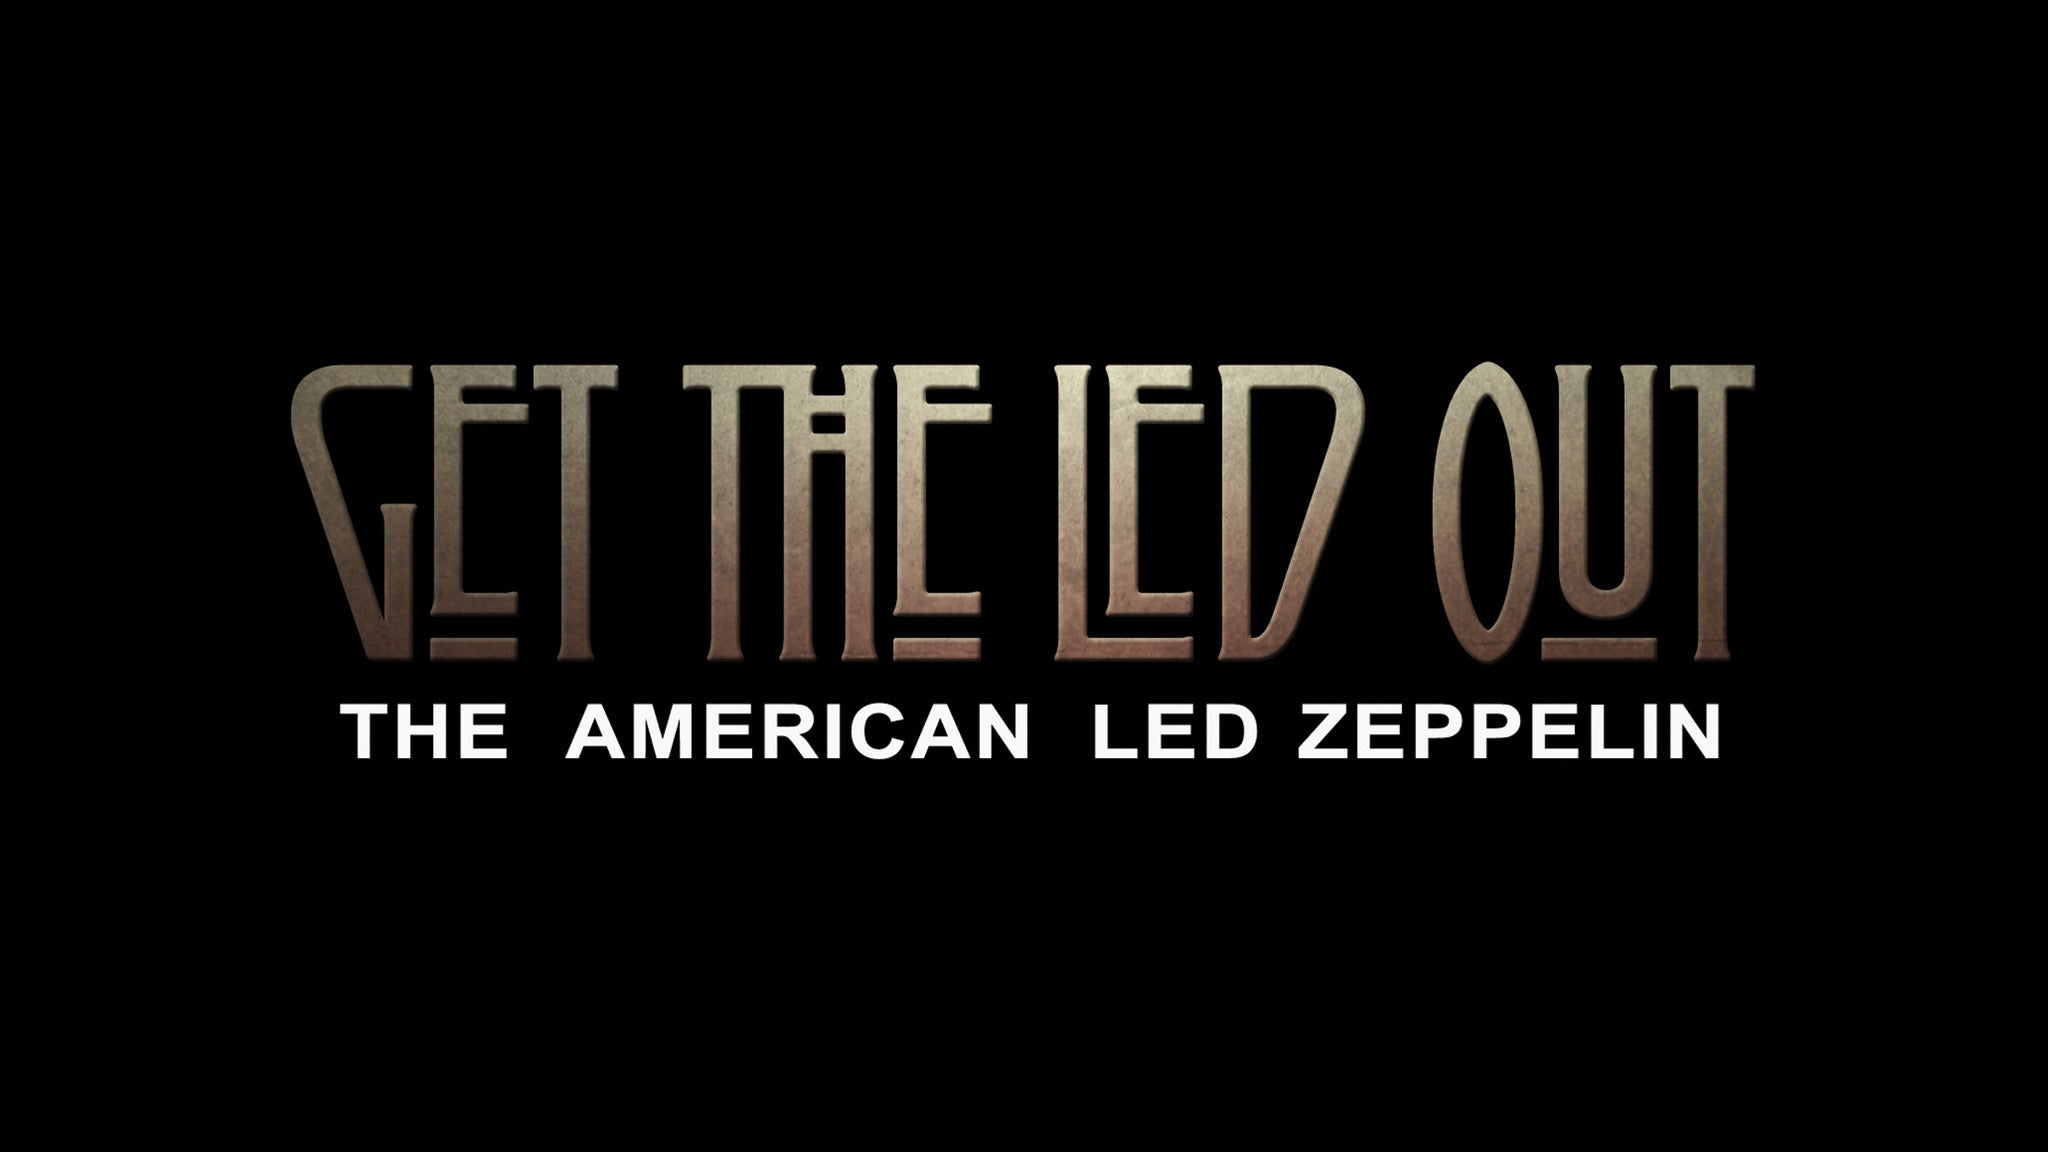 Get the Led Out at Ozarks Amphitheater